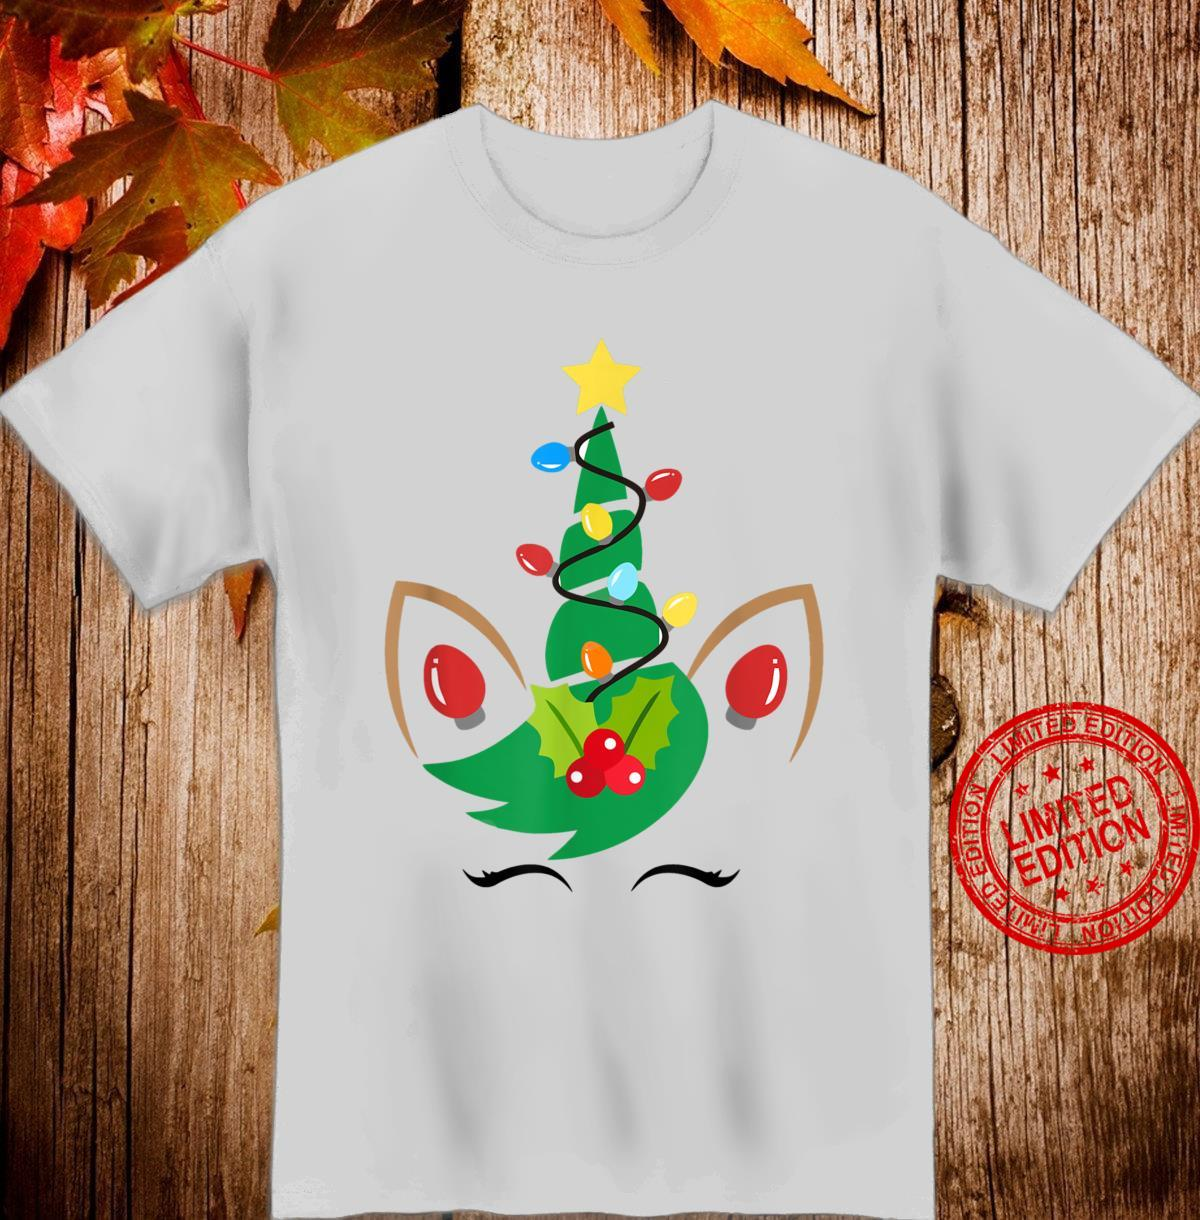 Unicorn Reindeer Face Christmas Cute Xmas Girls Shirt